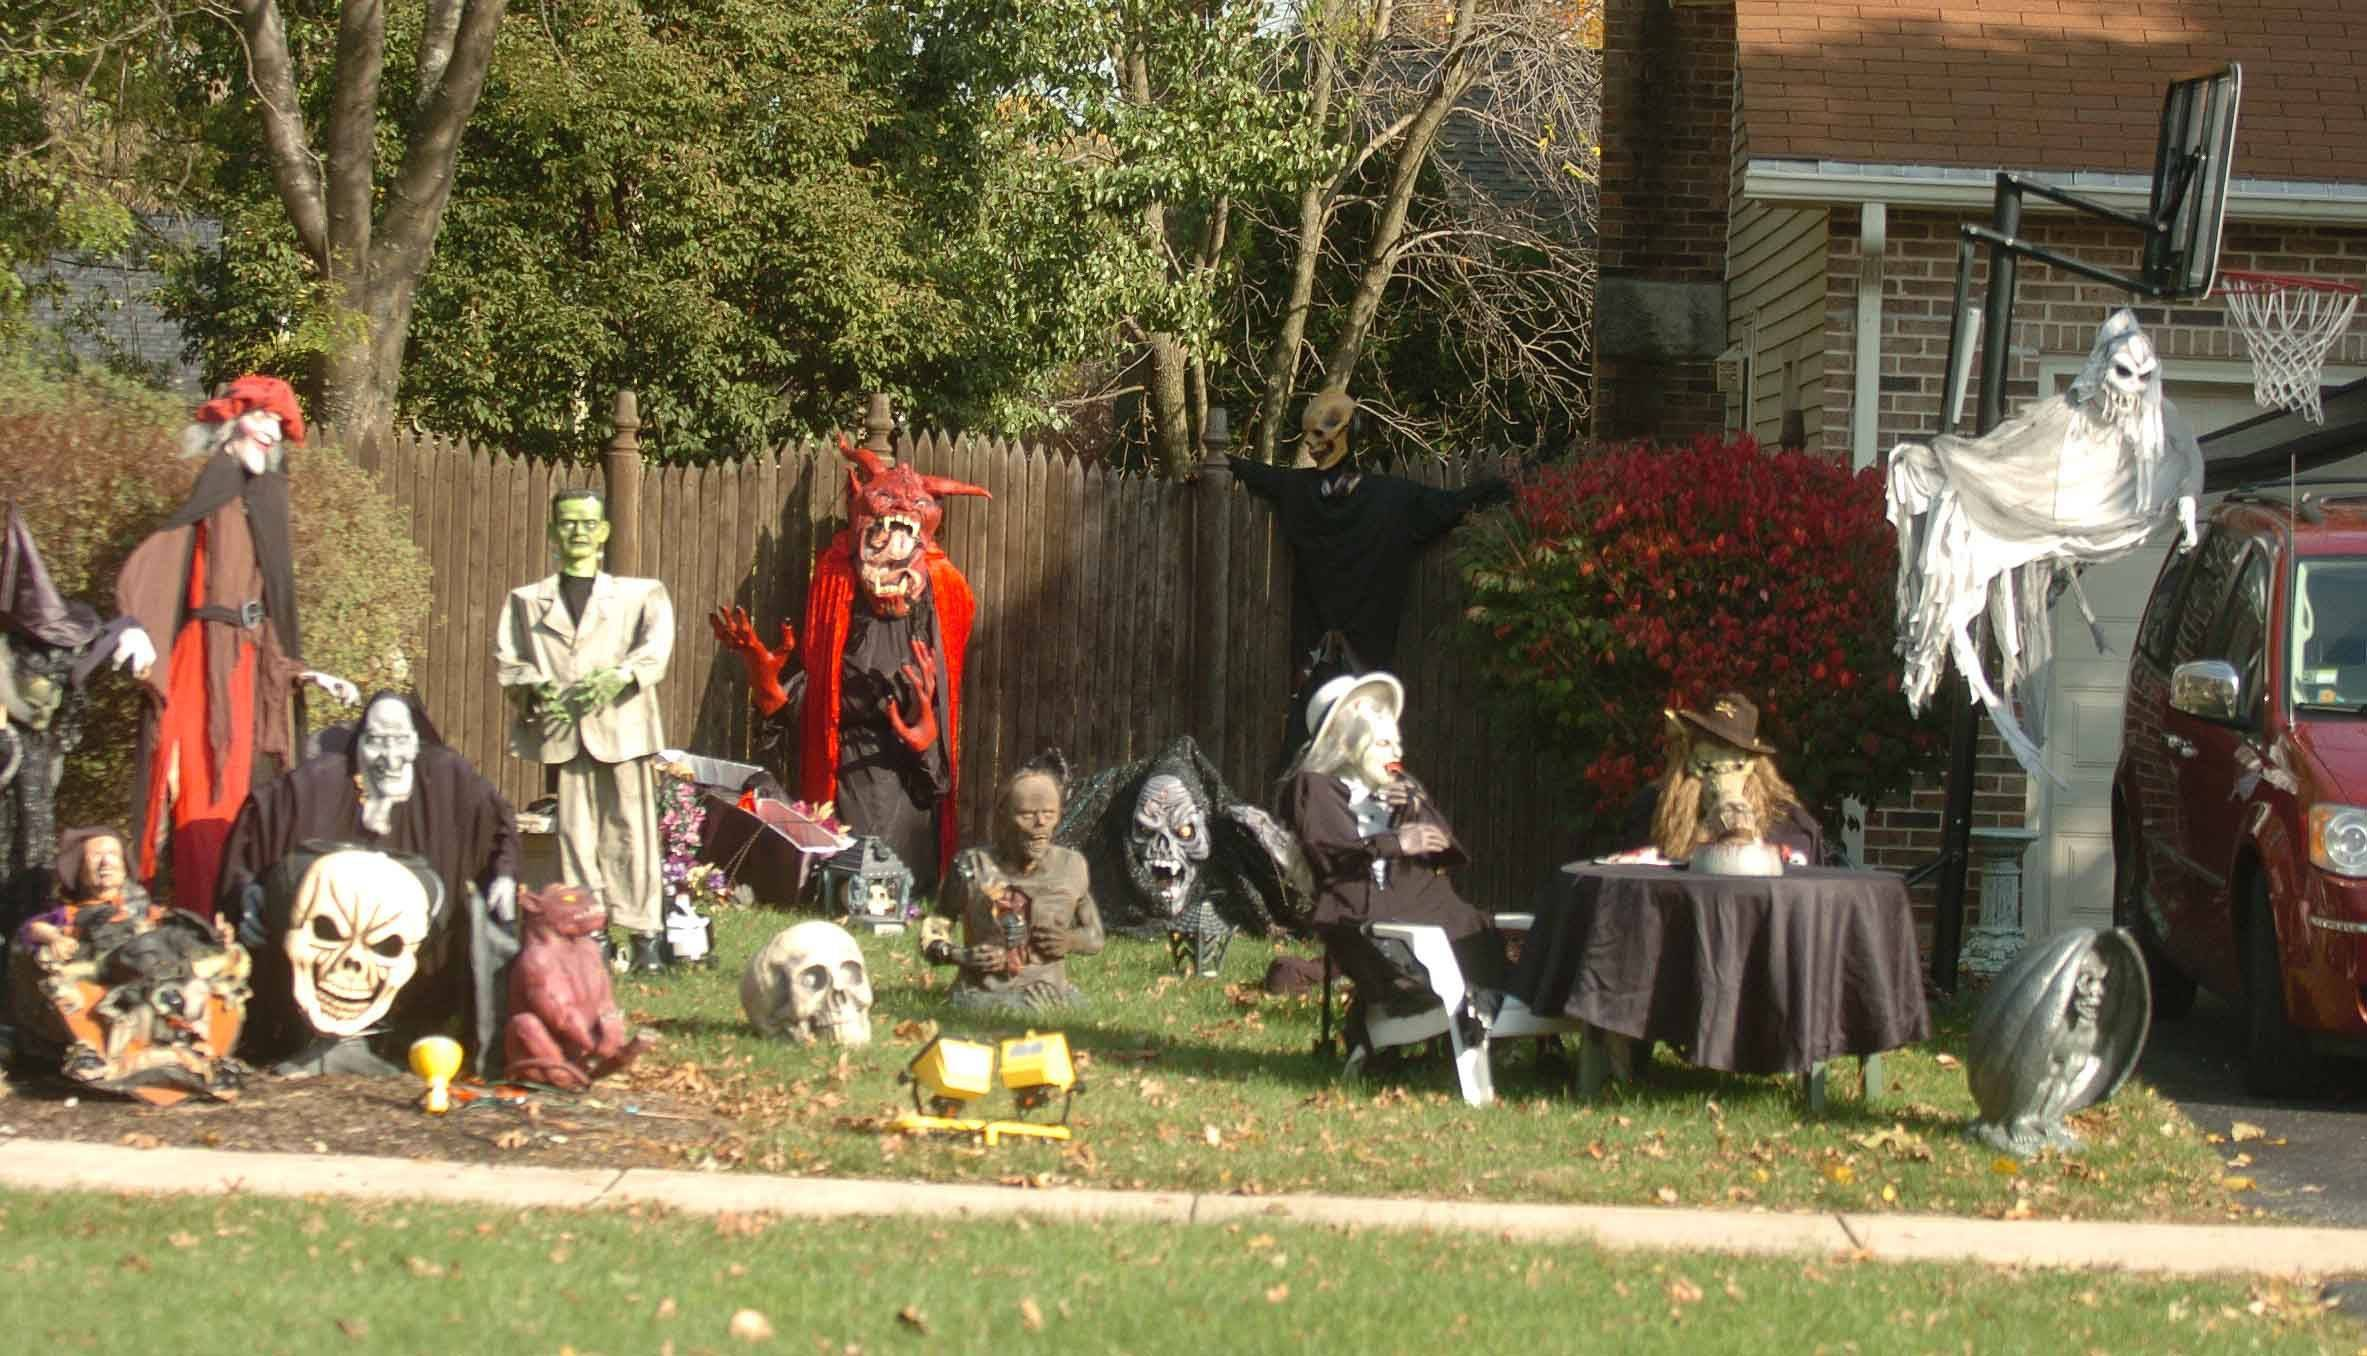 The home at 12 N. River Road in Naperville has plenty of creepy allure.